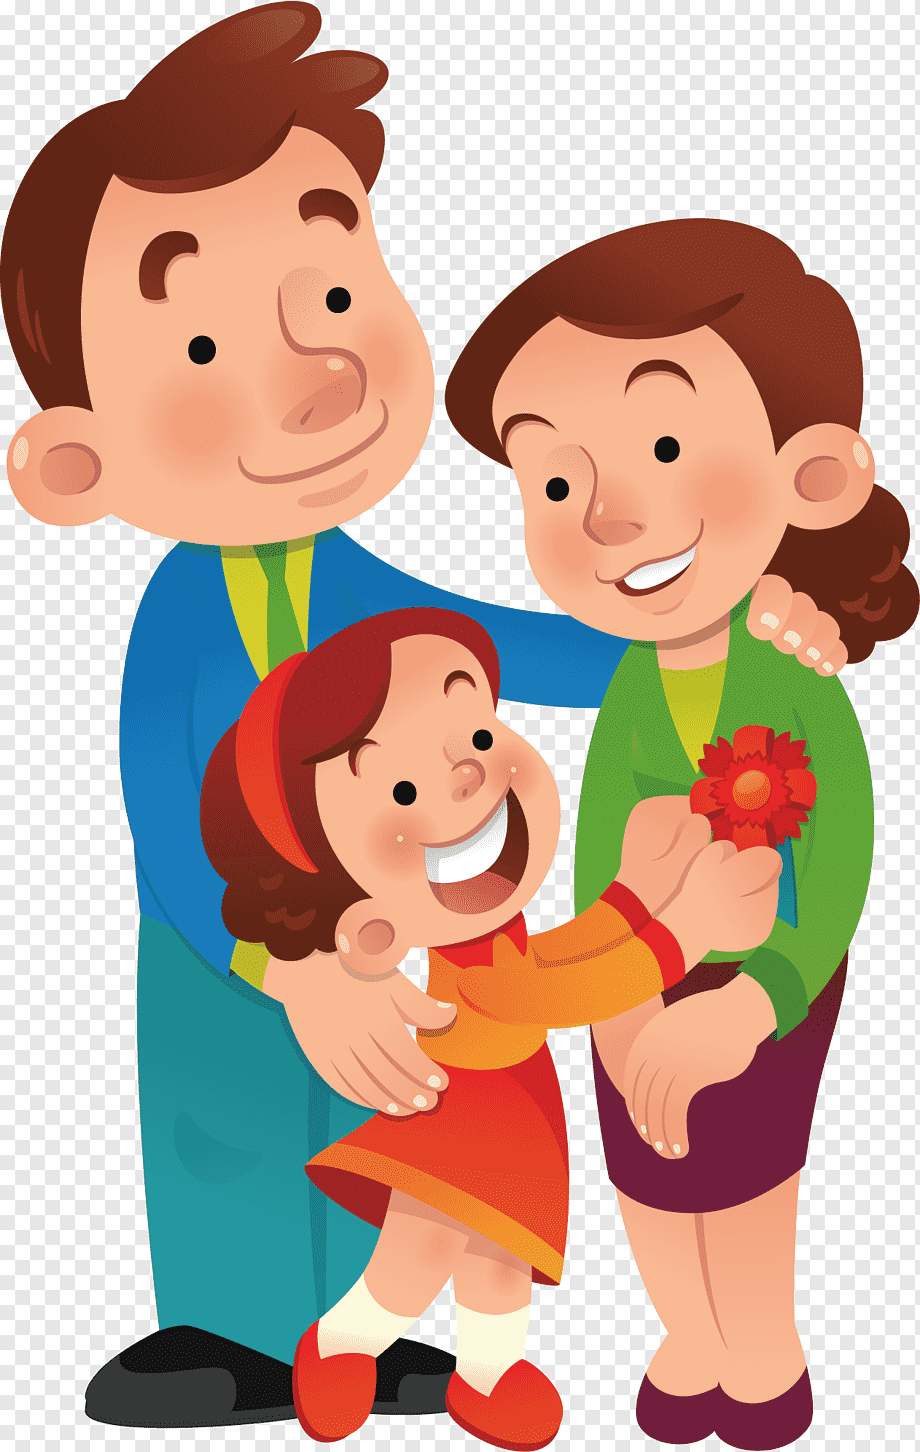 Family Photo Cartoon : family, photo, cartoon, Animation, Cartoon, Family,, Love,, Character,, Template, PNGWing